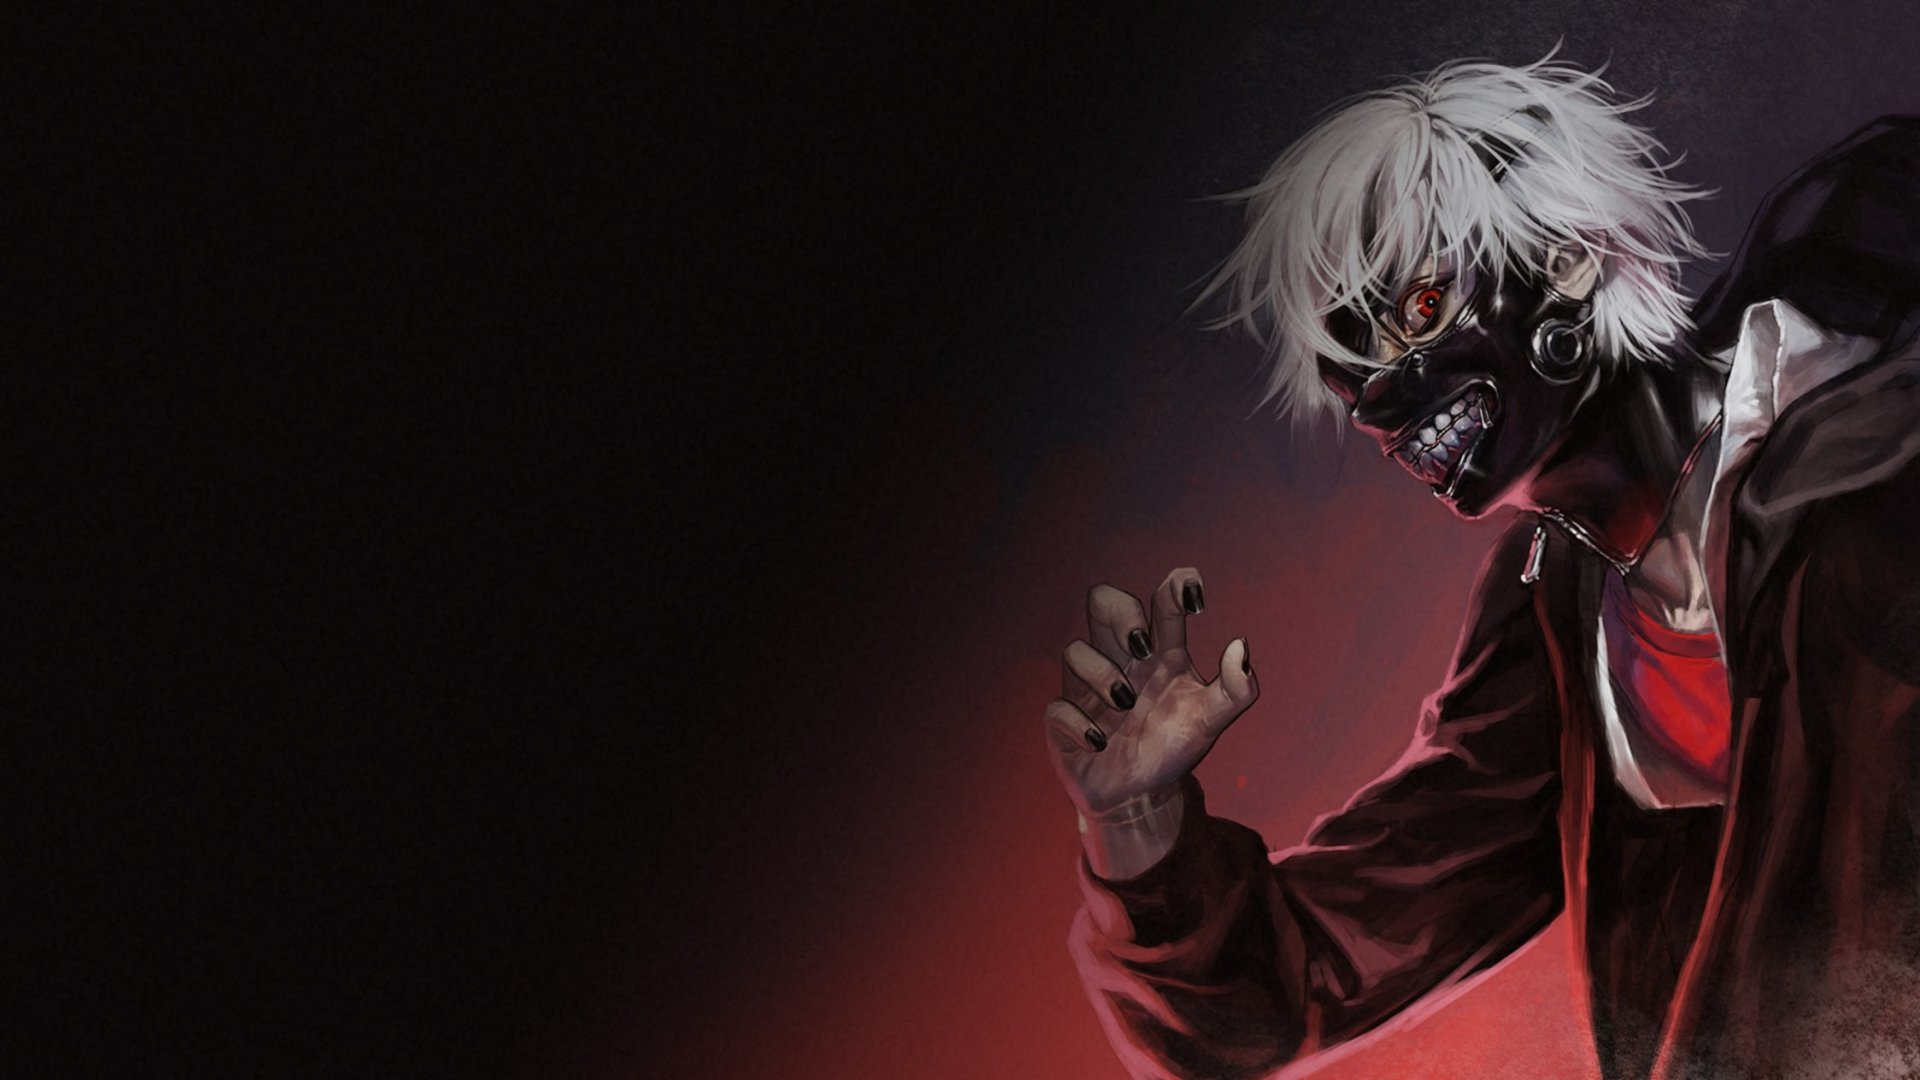 hd wallpaper background id545916 1920x1080 anime tokyo ghoul